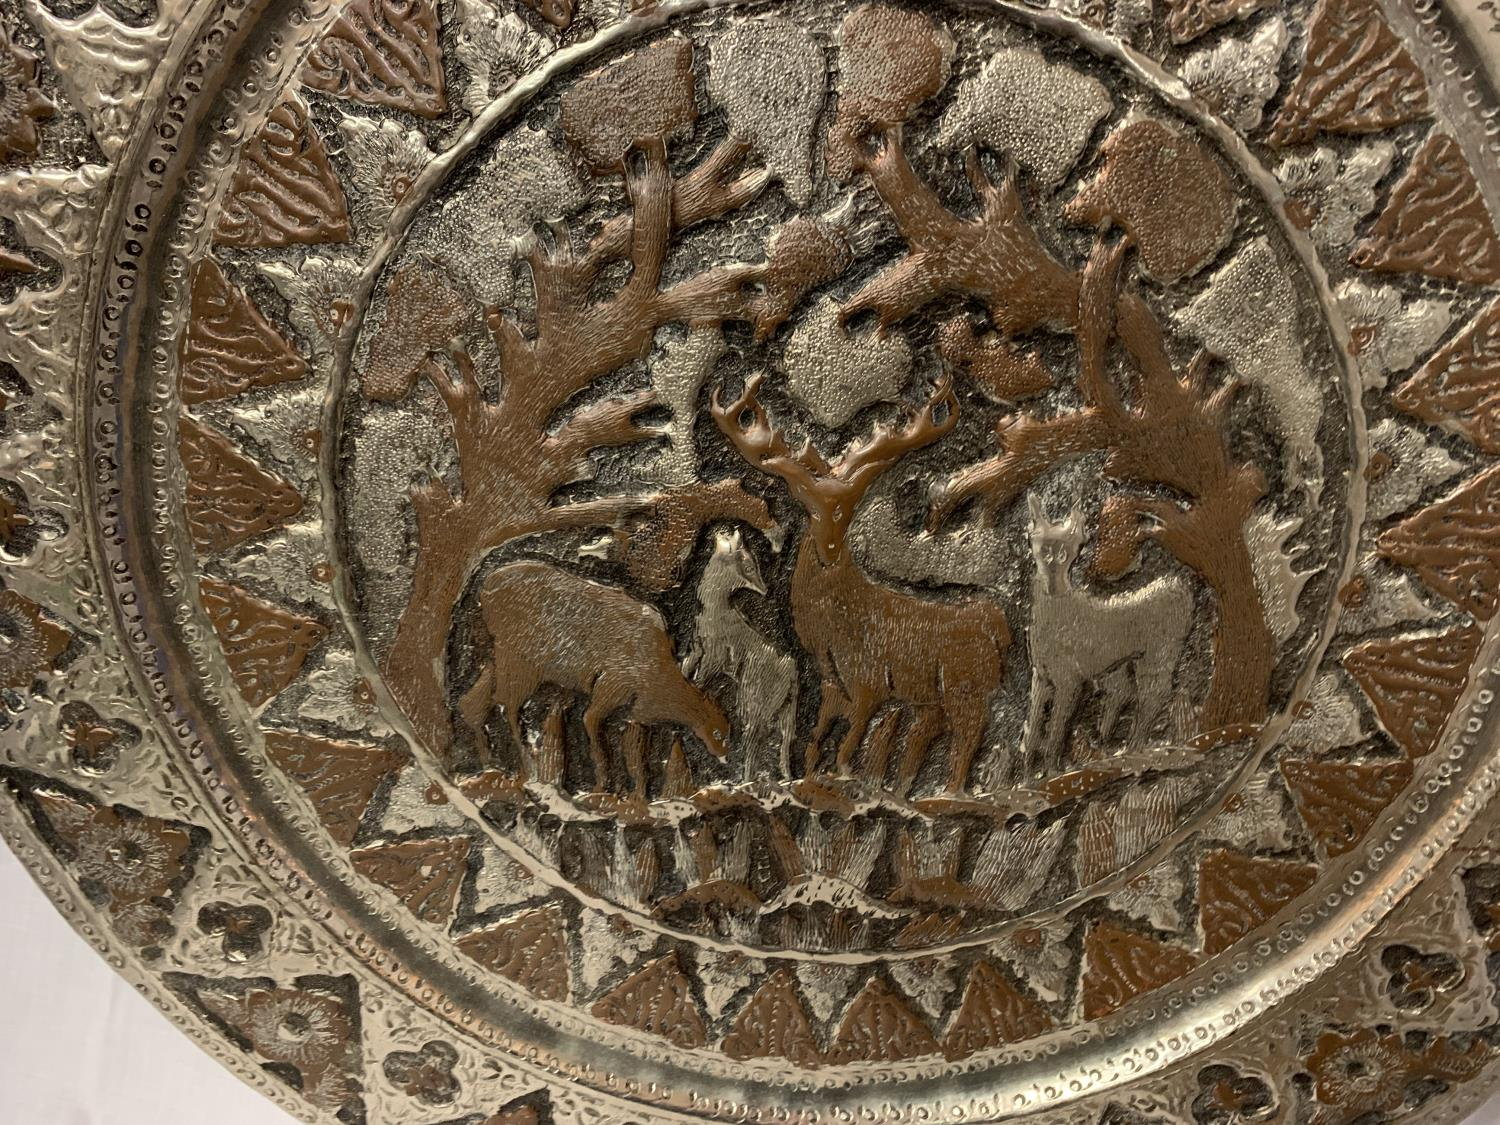 A LARGE MIDDLE EASTERN / ORIENTAL WHITE METAL CHARGER WITH FIGUAL DESIGN - Image 2 of 2